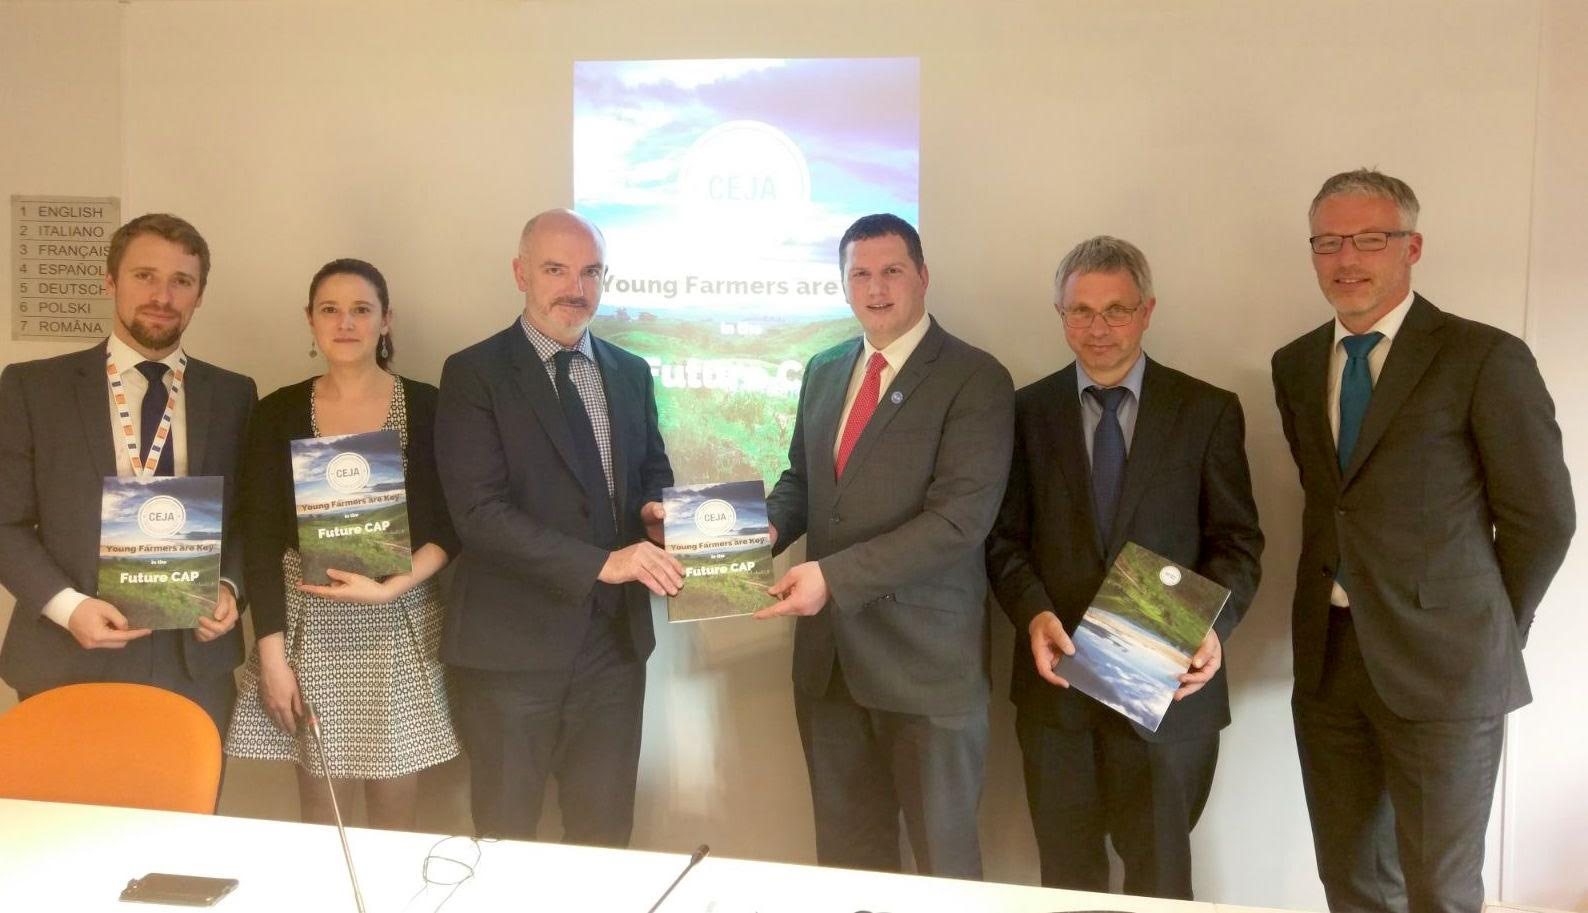 Generational renewal is key to future of CAP, Council of Young Farmers says